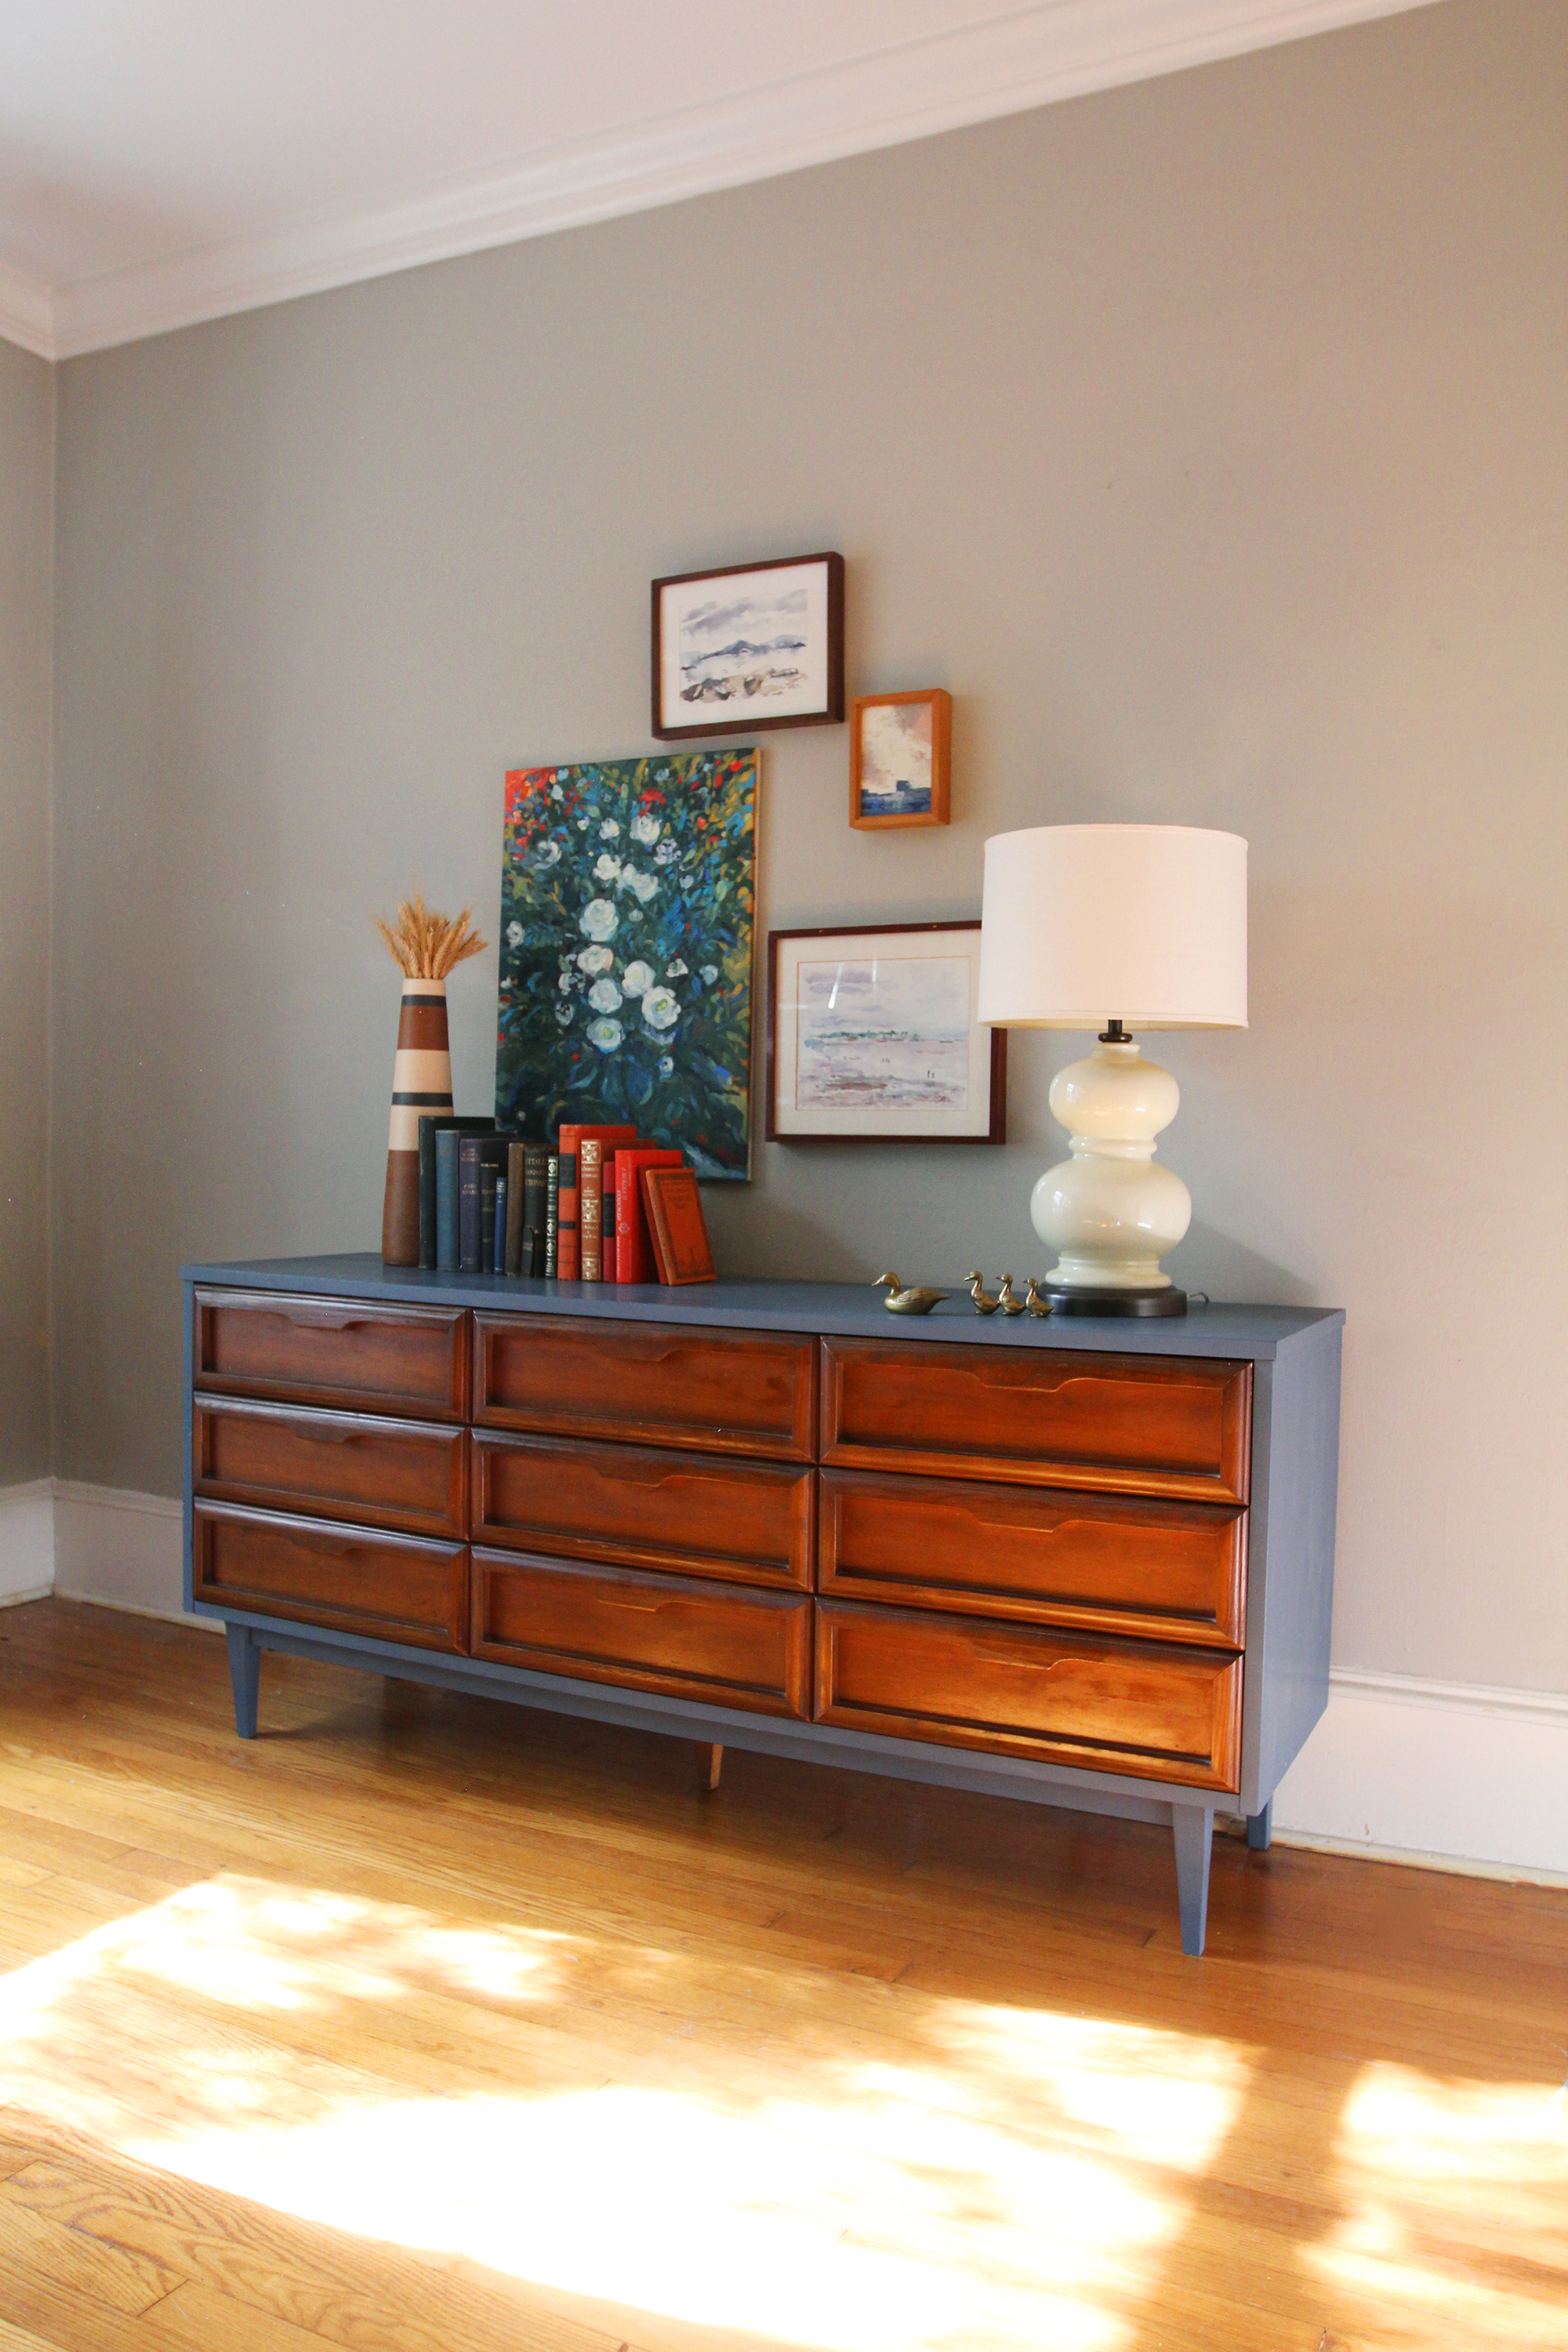 jo-torrijos-a-simpler-design-atlanta-painted-furniture-annie-sloan-aubusson-blue-french-linen-mid-century-painted-dresser-14.jpg